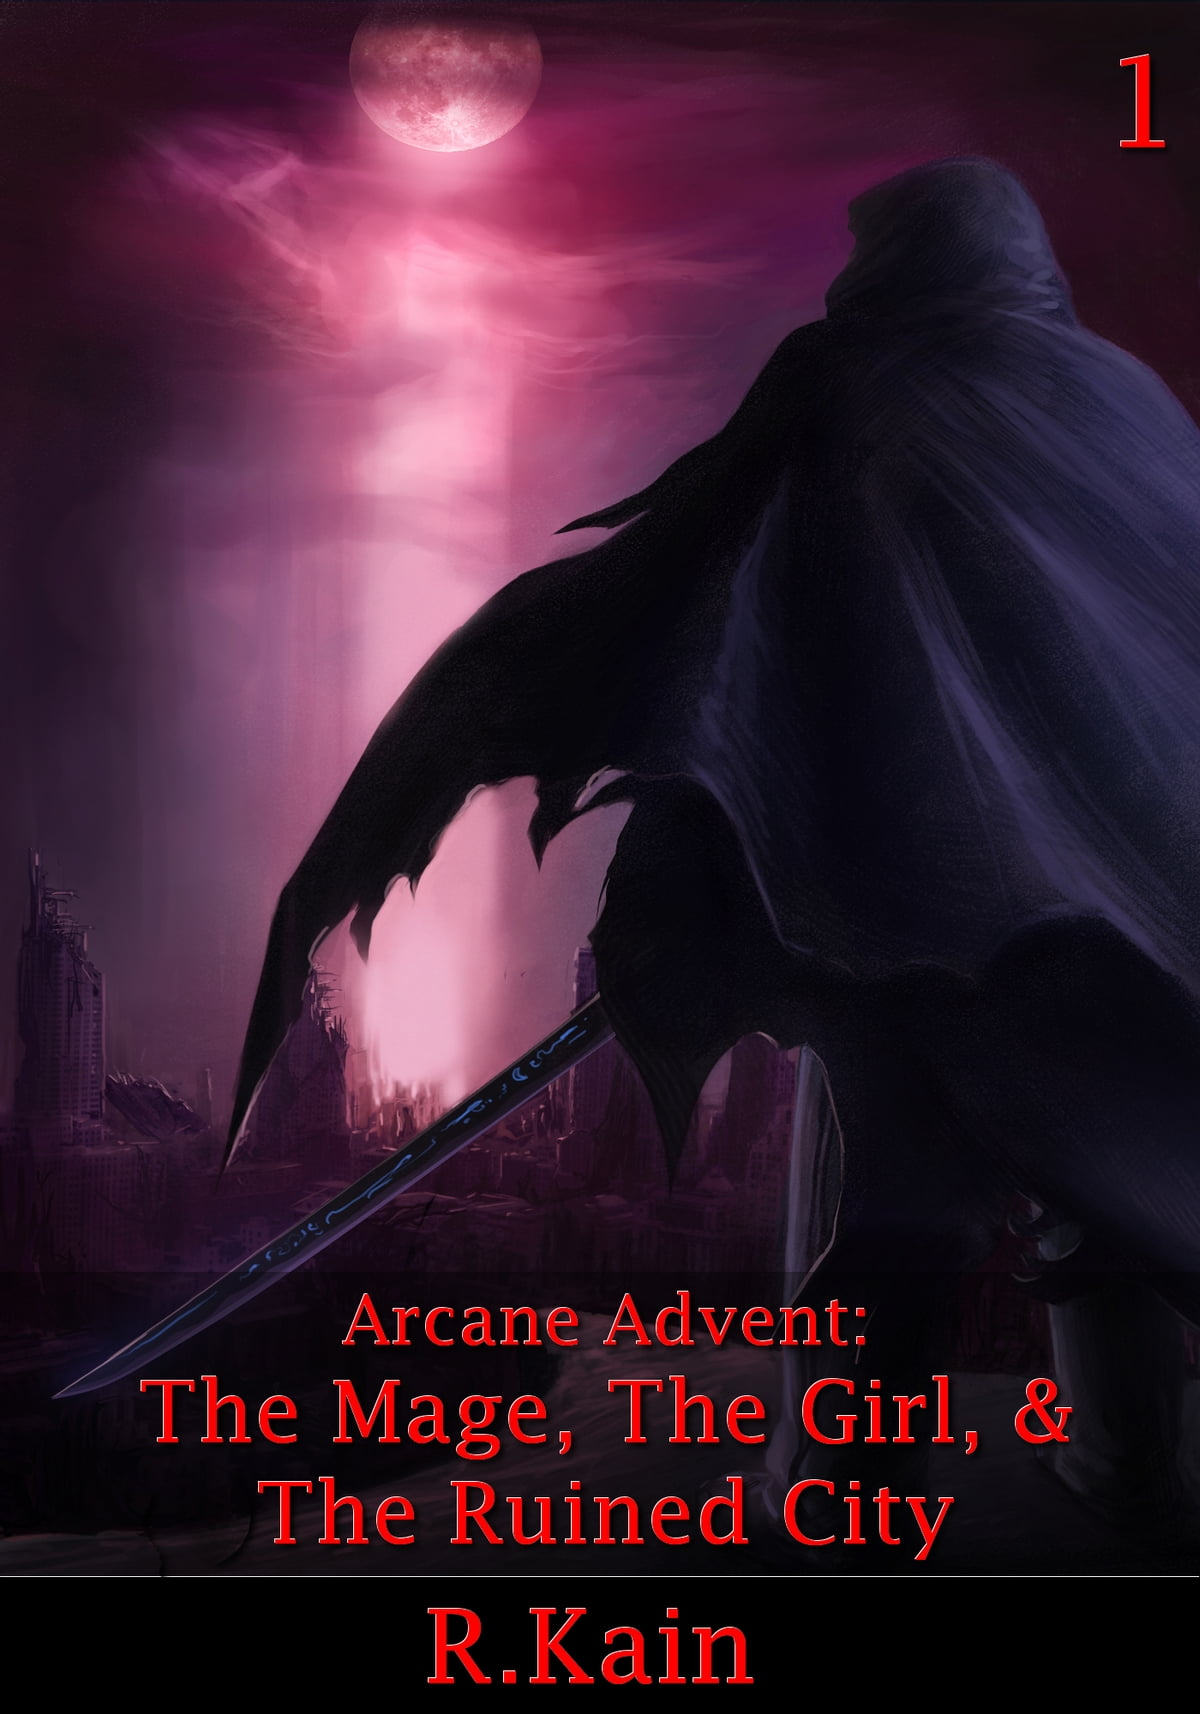 The Wolfs Doppelganger (Arcane Advent Diaries Book 1)